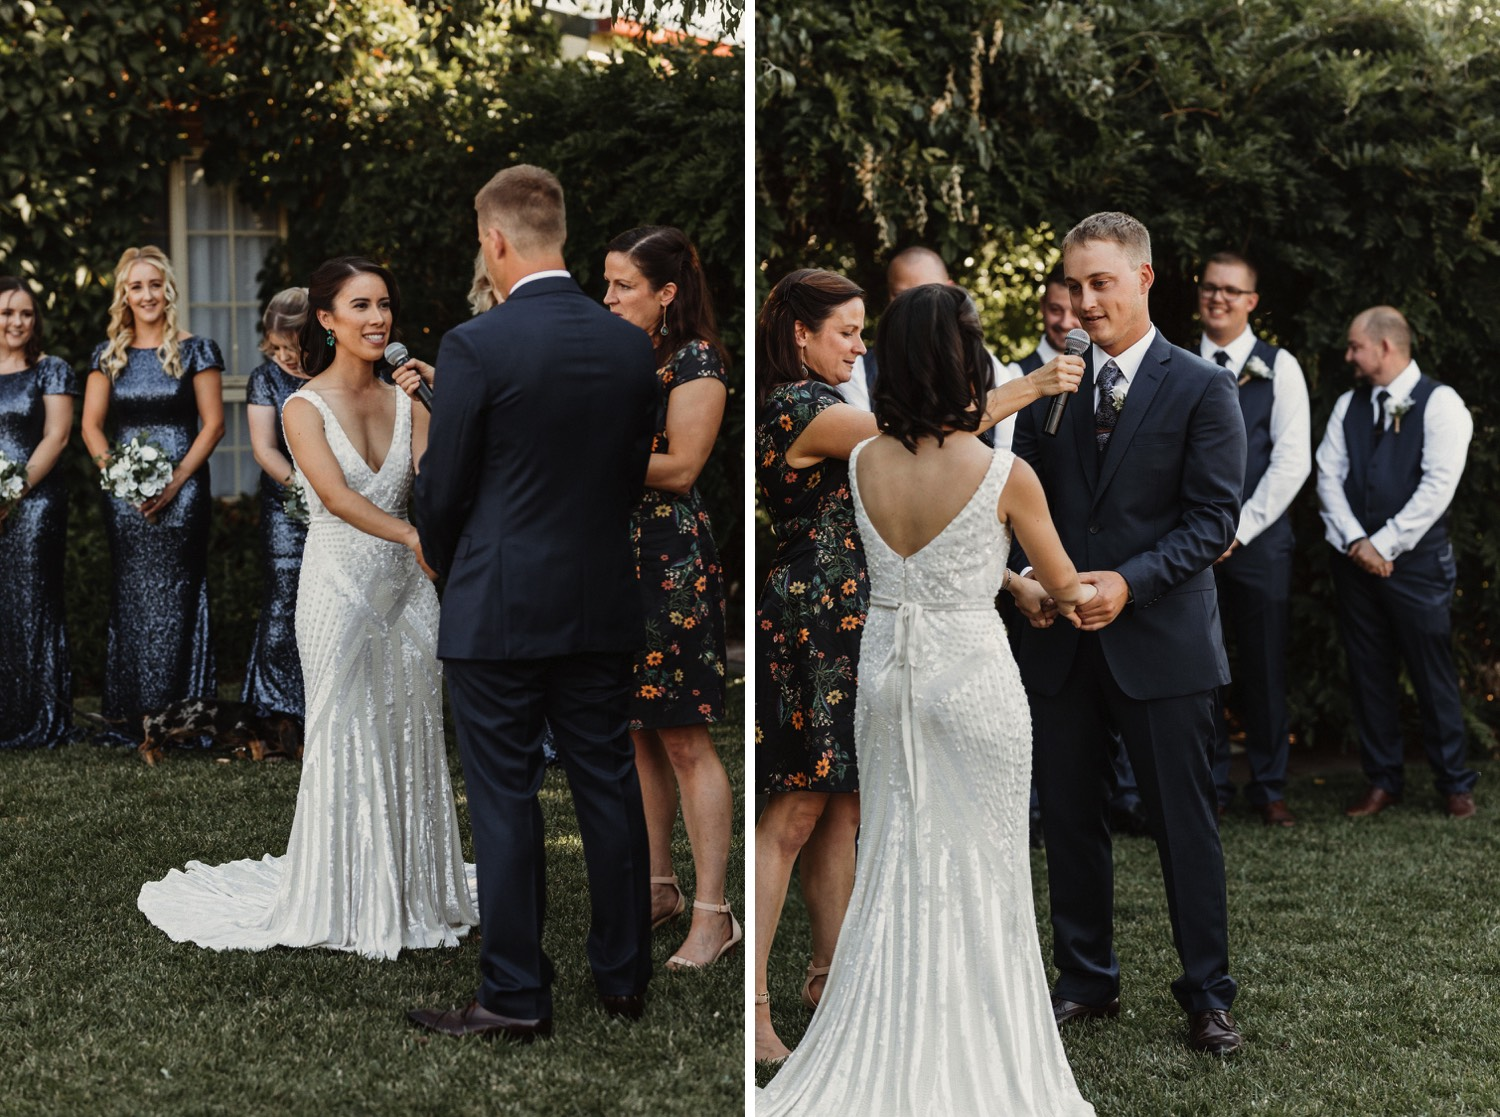 Small home wedding in countryside featuring Karen Willis Holmes dress by Sunshine Coast Wedding Photographer Shae Estella Photo